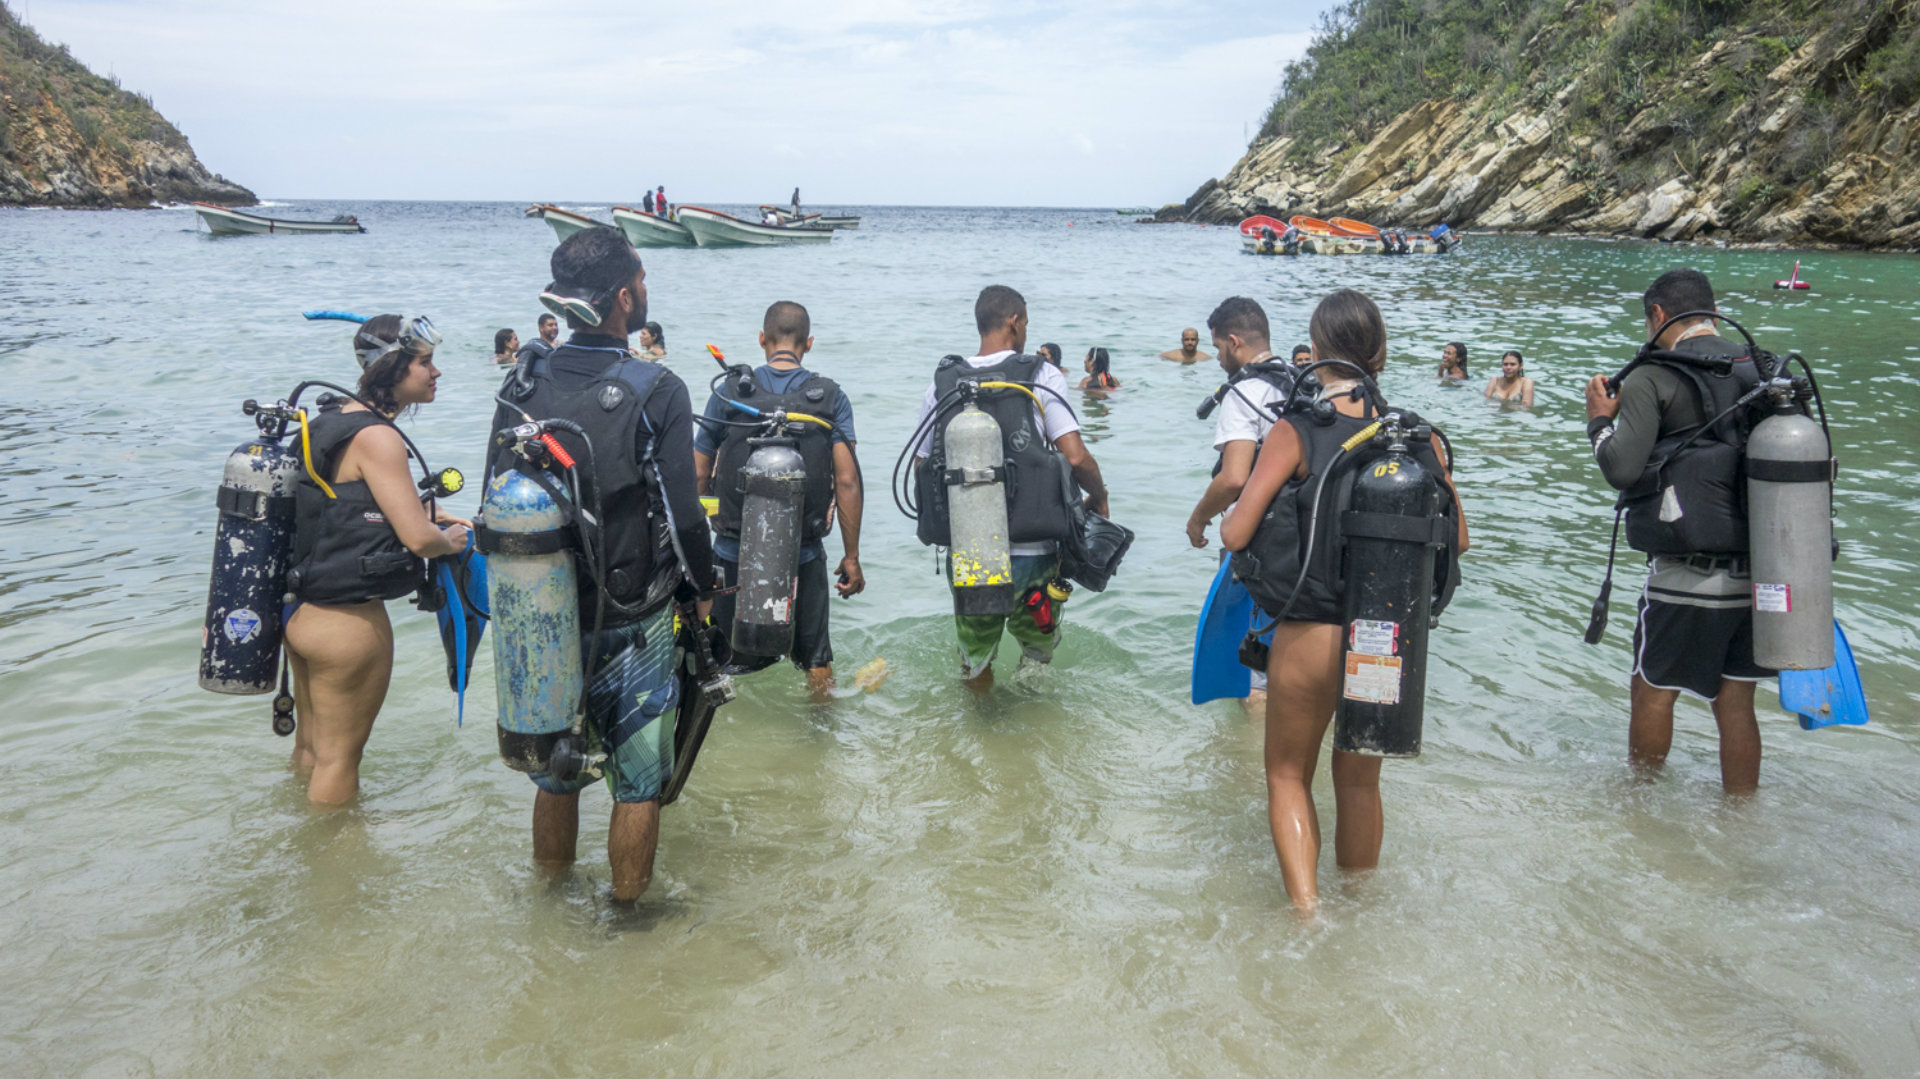 Buceo 5